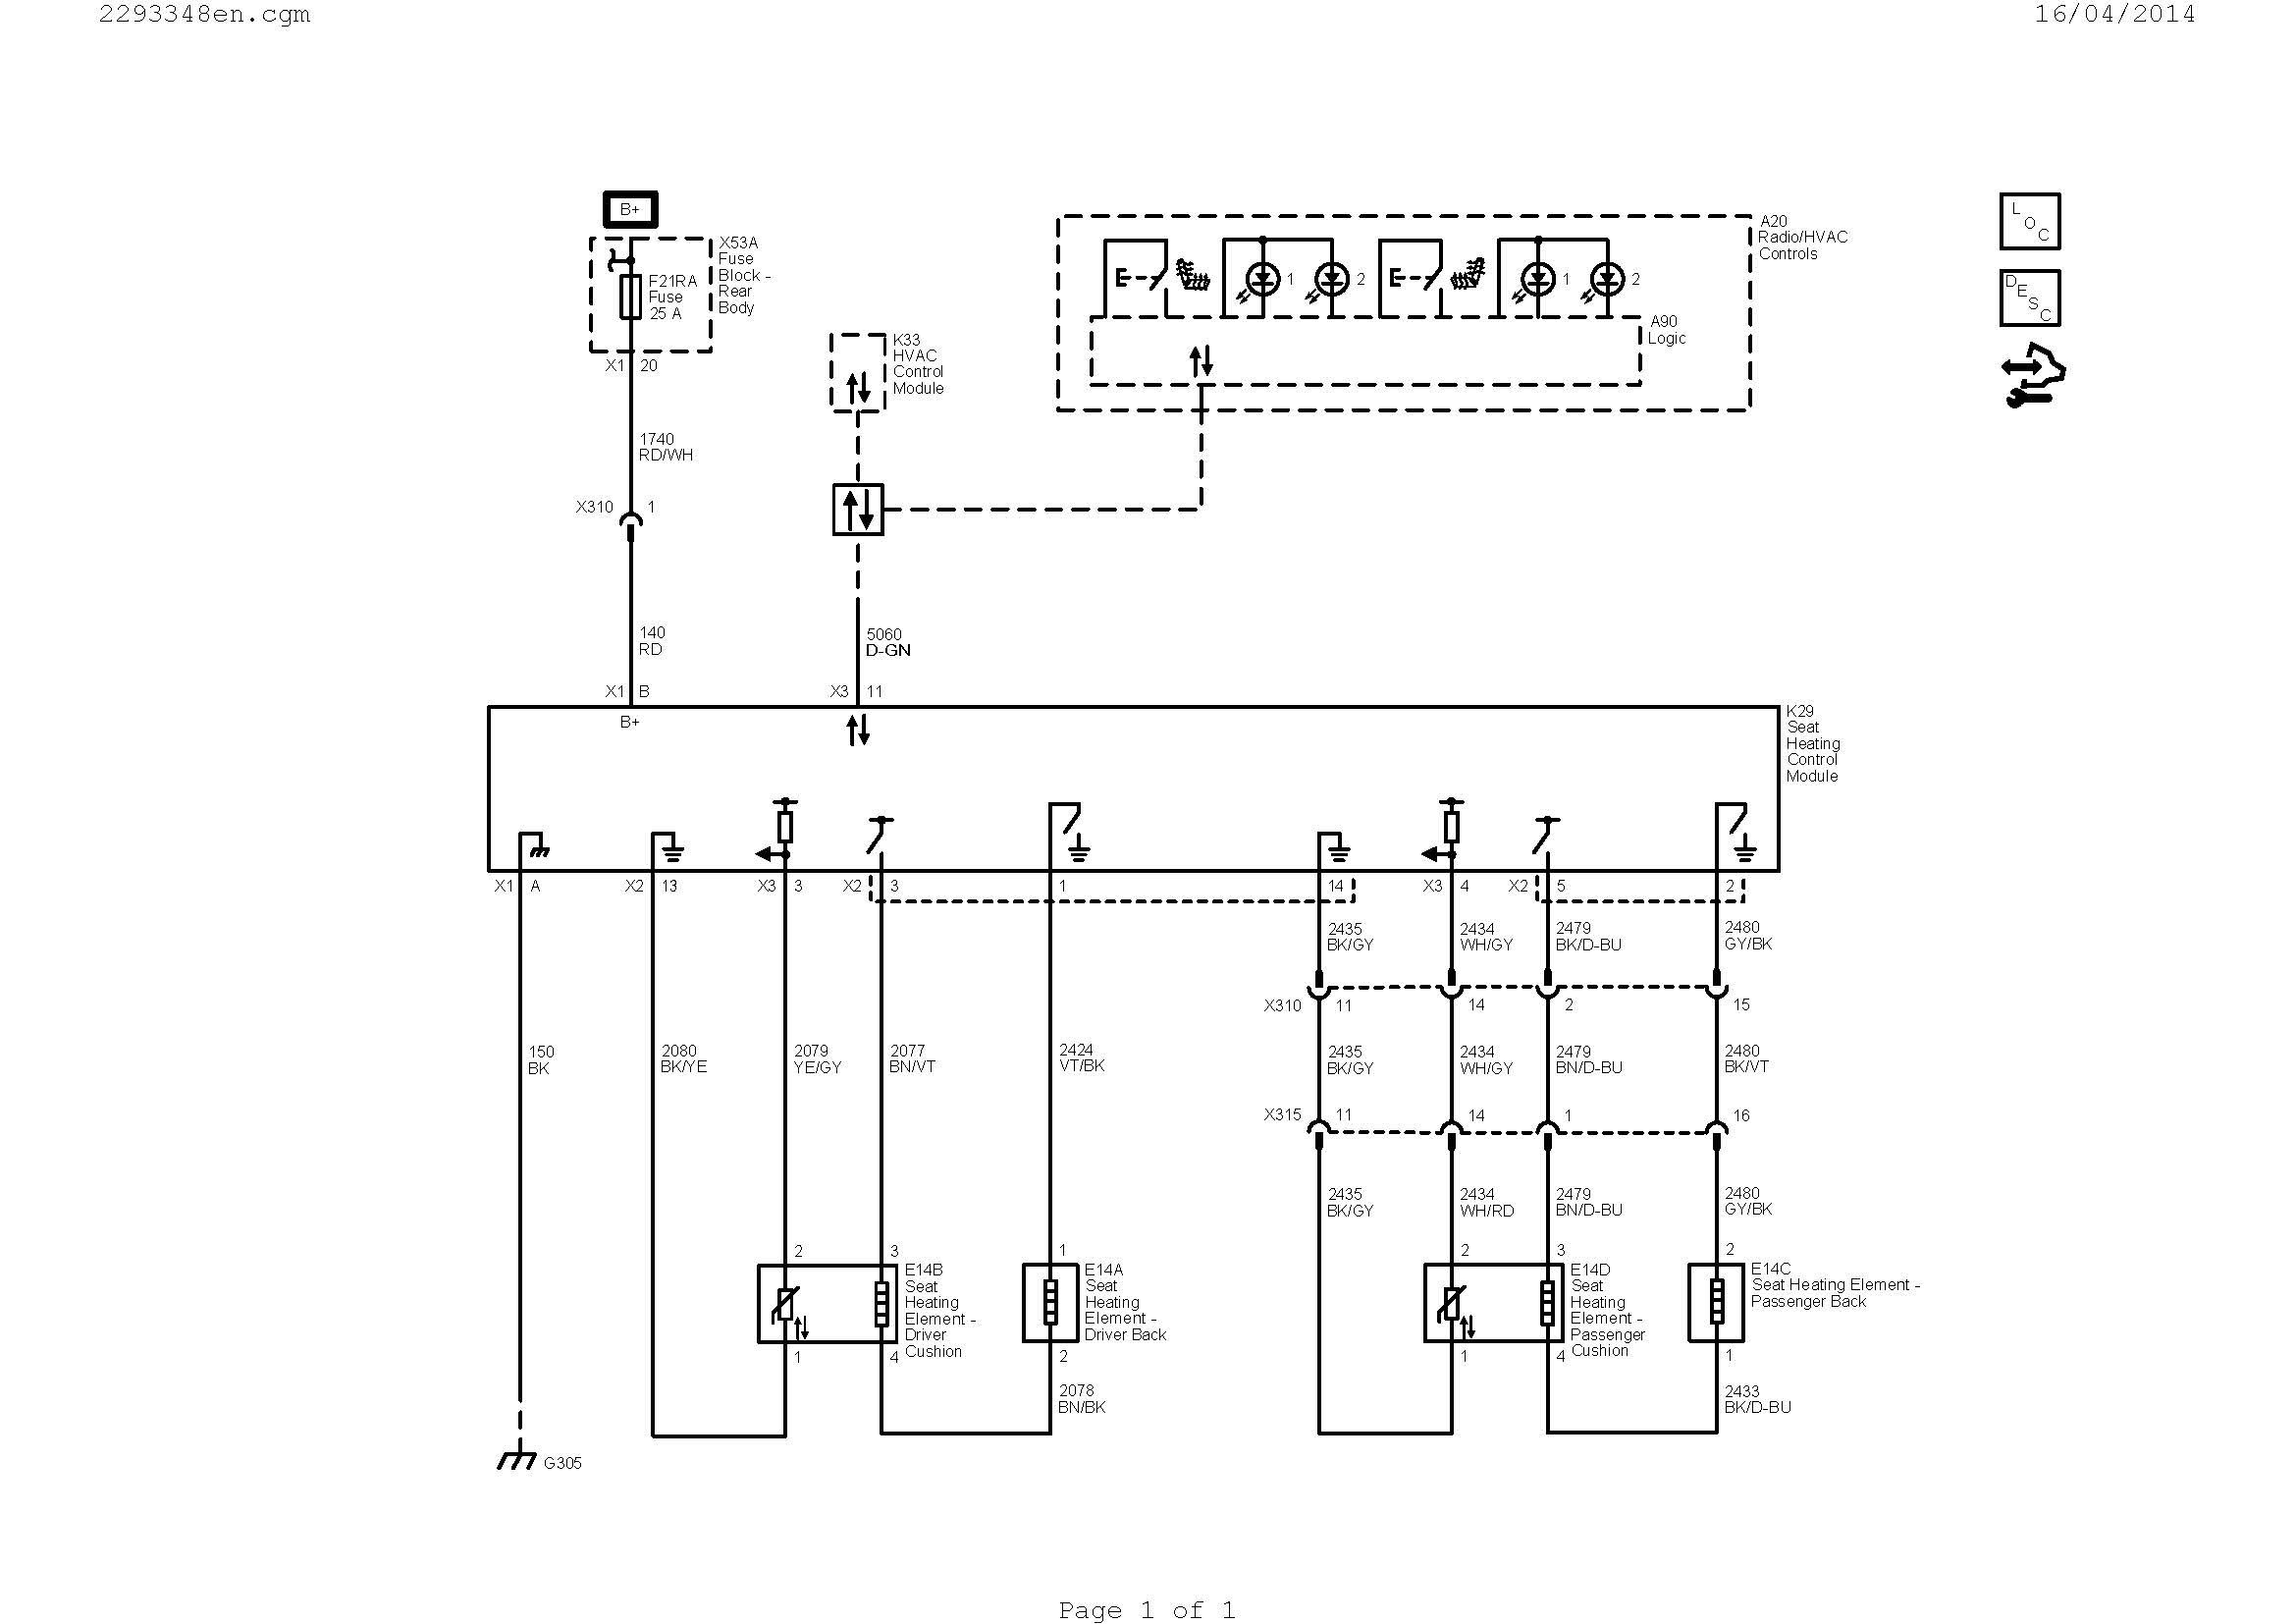 truck wiring diagram Download-Electrical Wiring Diagrams New Phone Wiring Diagram New Best Wiring Diagram Od Rv Park Electrical 12-k